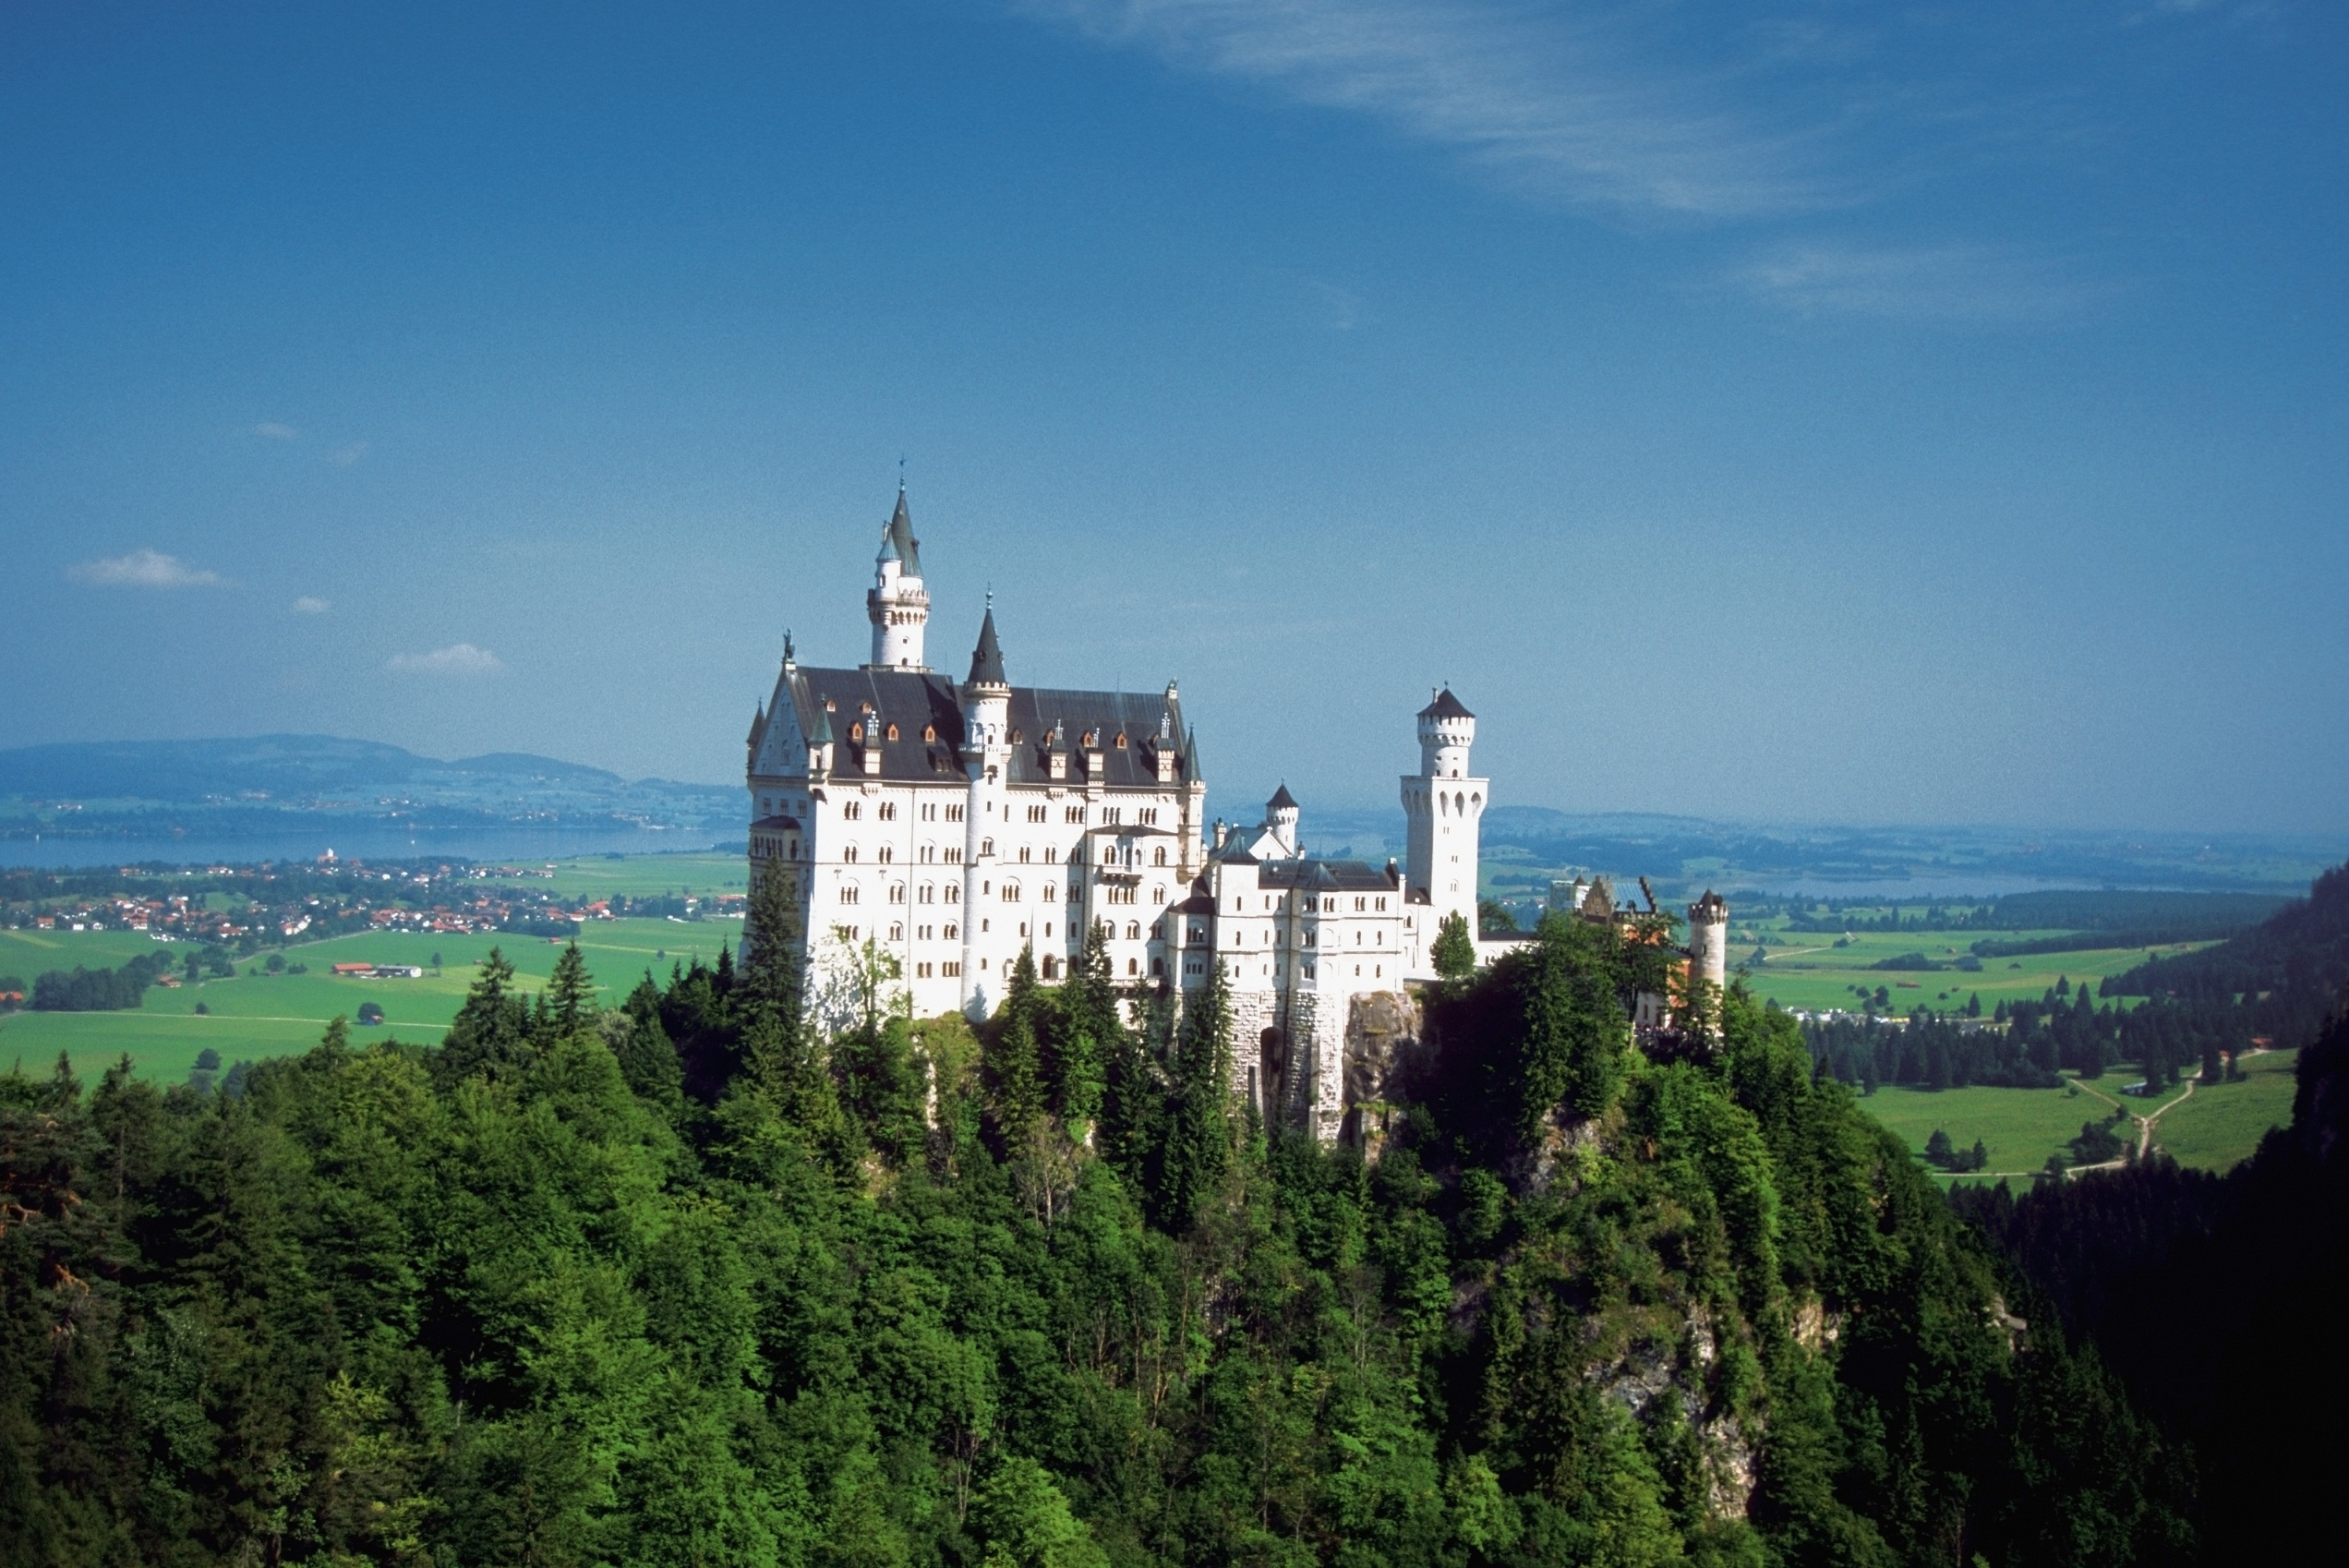 Neuschwanstein Castle on the top of a mountain, Fuessen, Germany